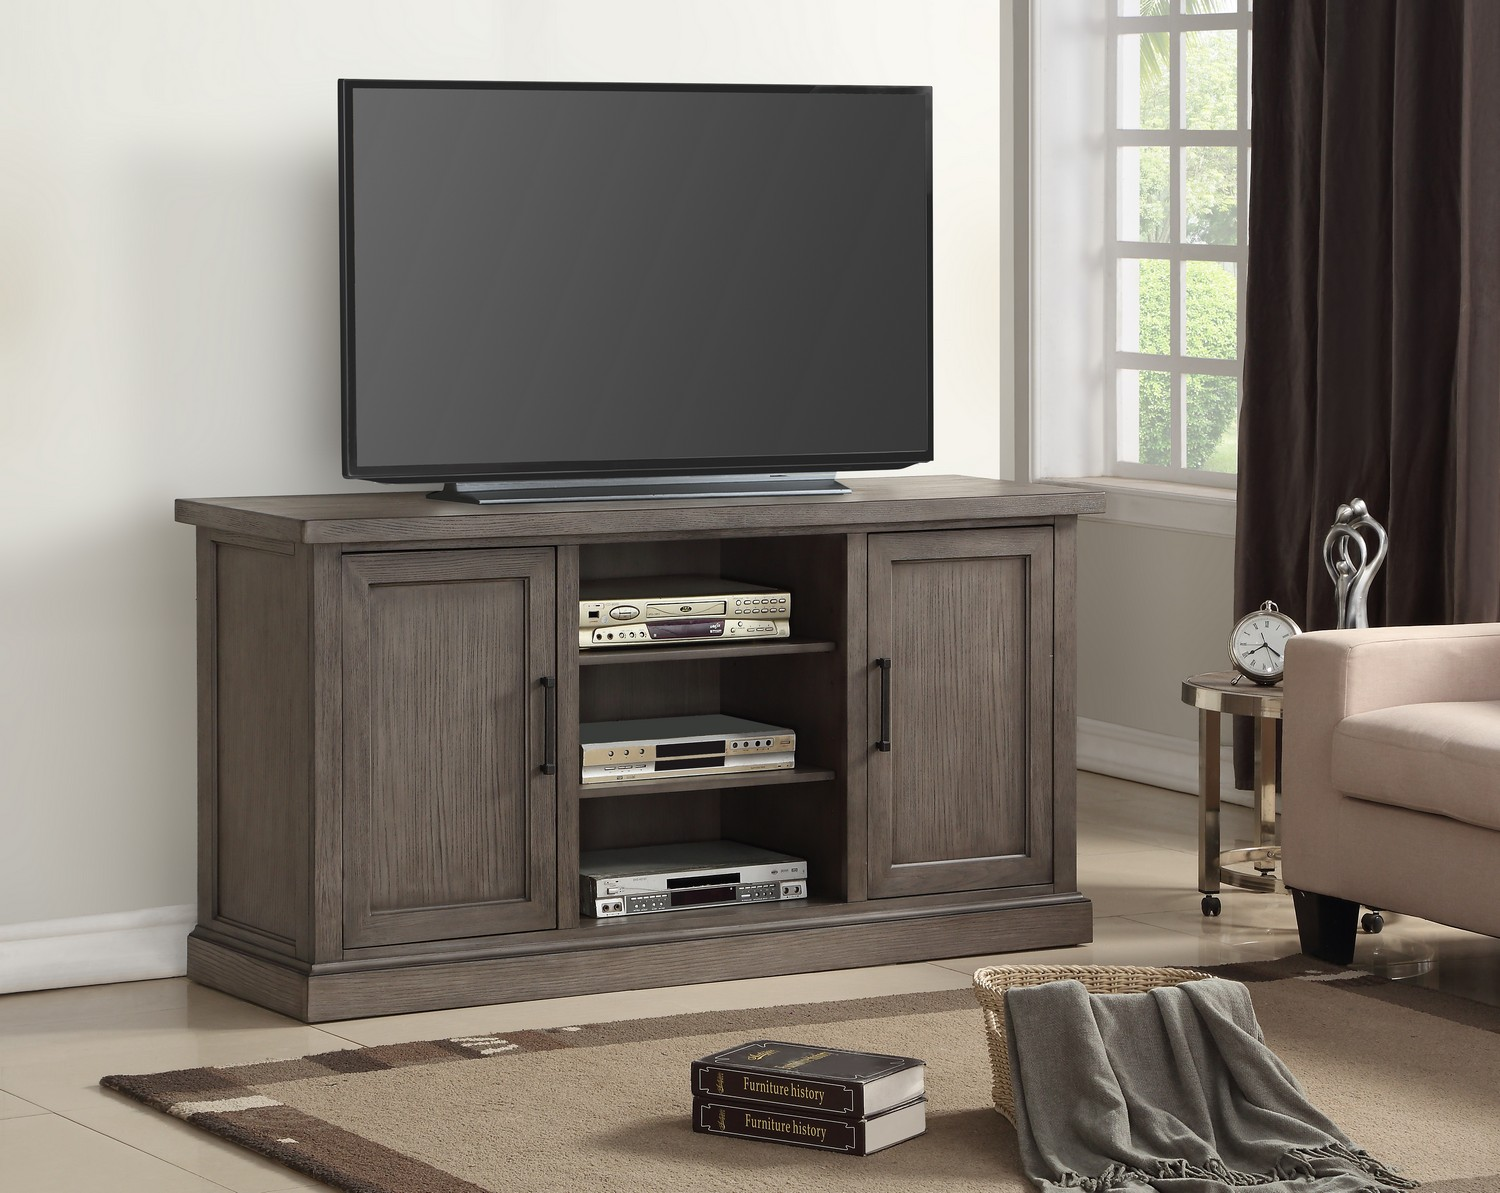 Parker House Scottsdale 63-inch TV Console - Vintage Weathered Pewter